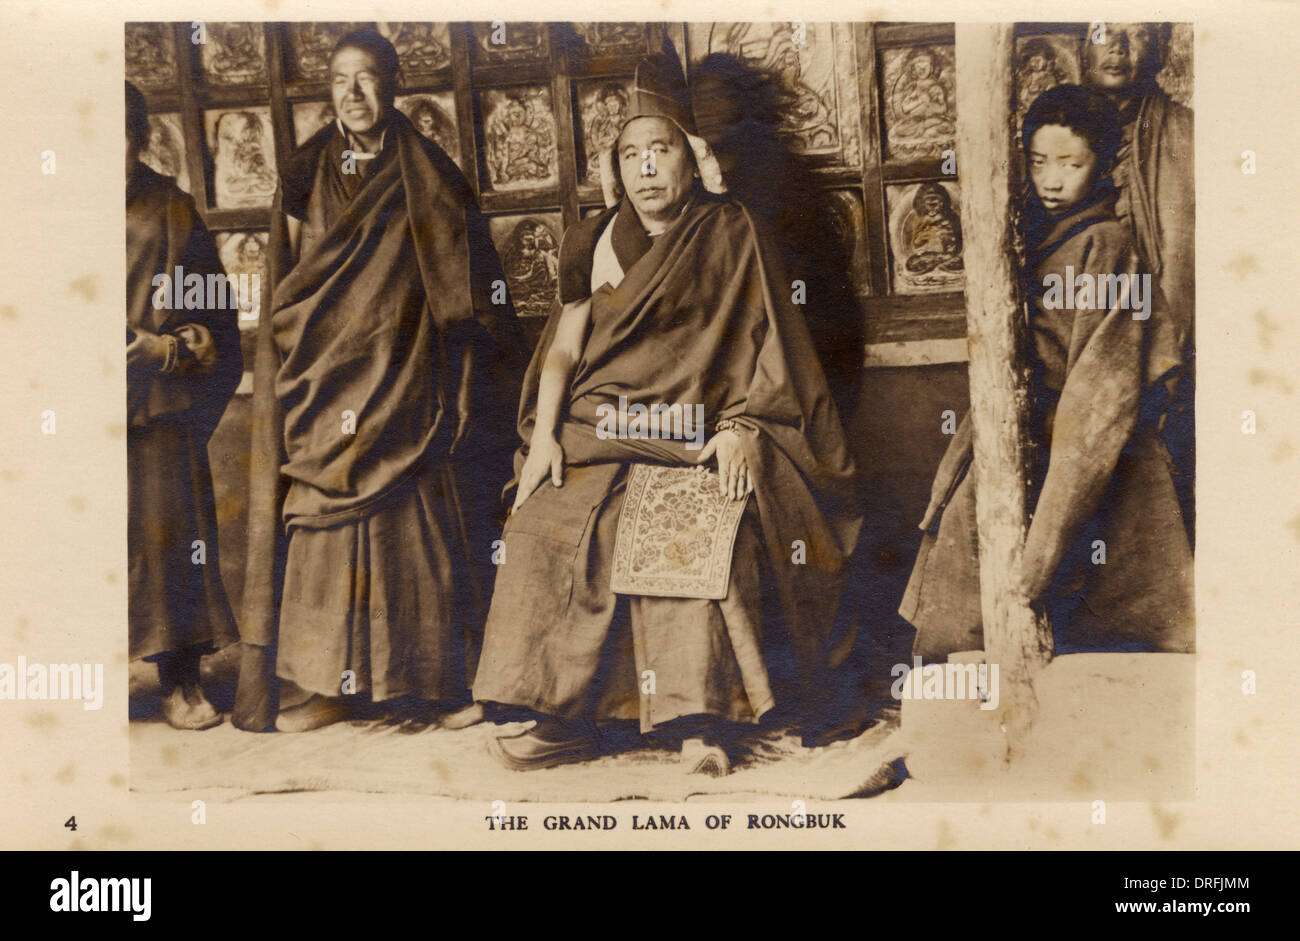 The Grand Lama of Rongbuk - 1922 Everest Expedition - Stock Image